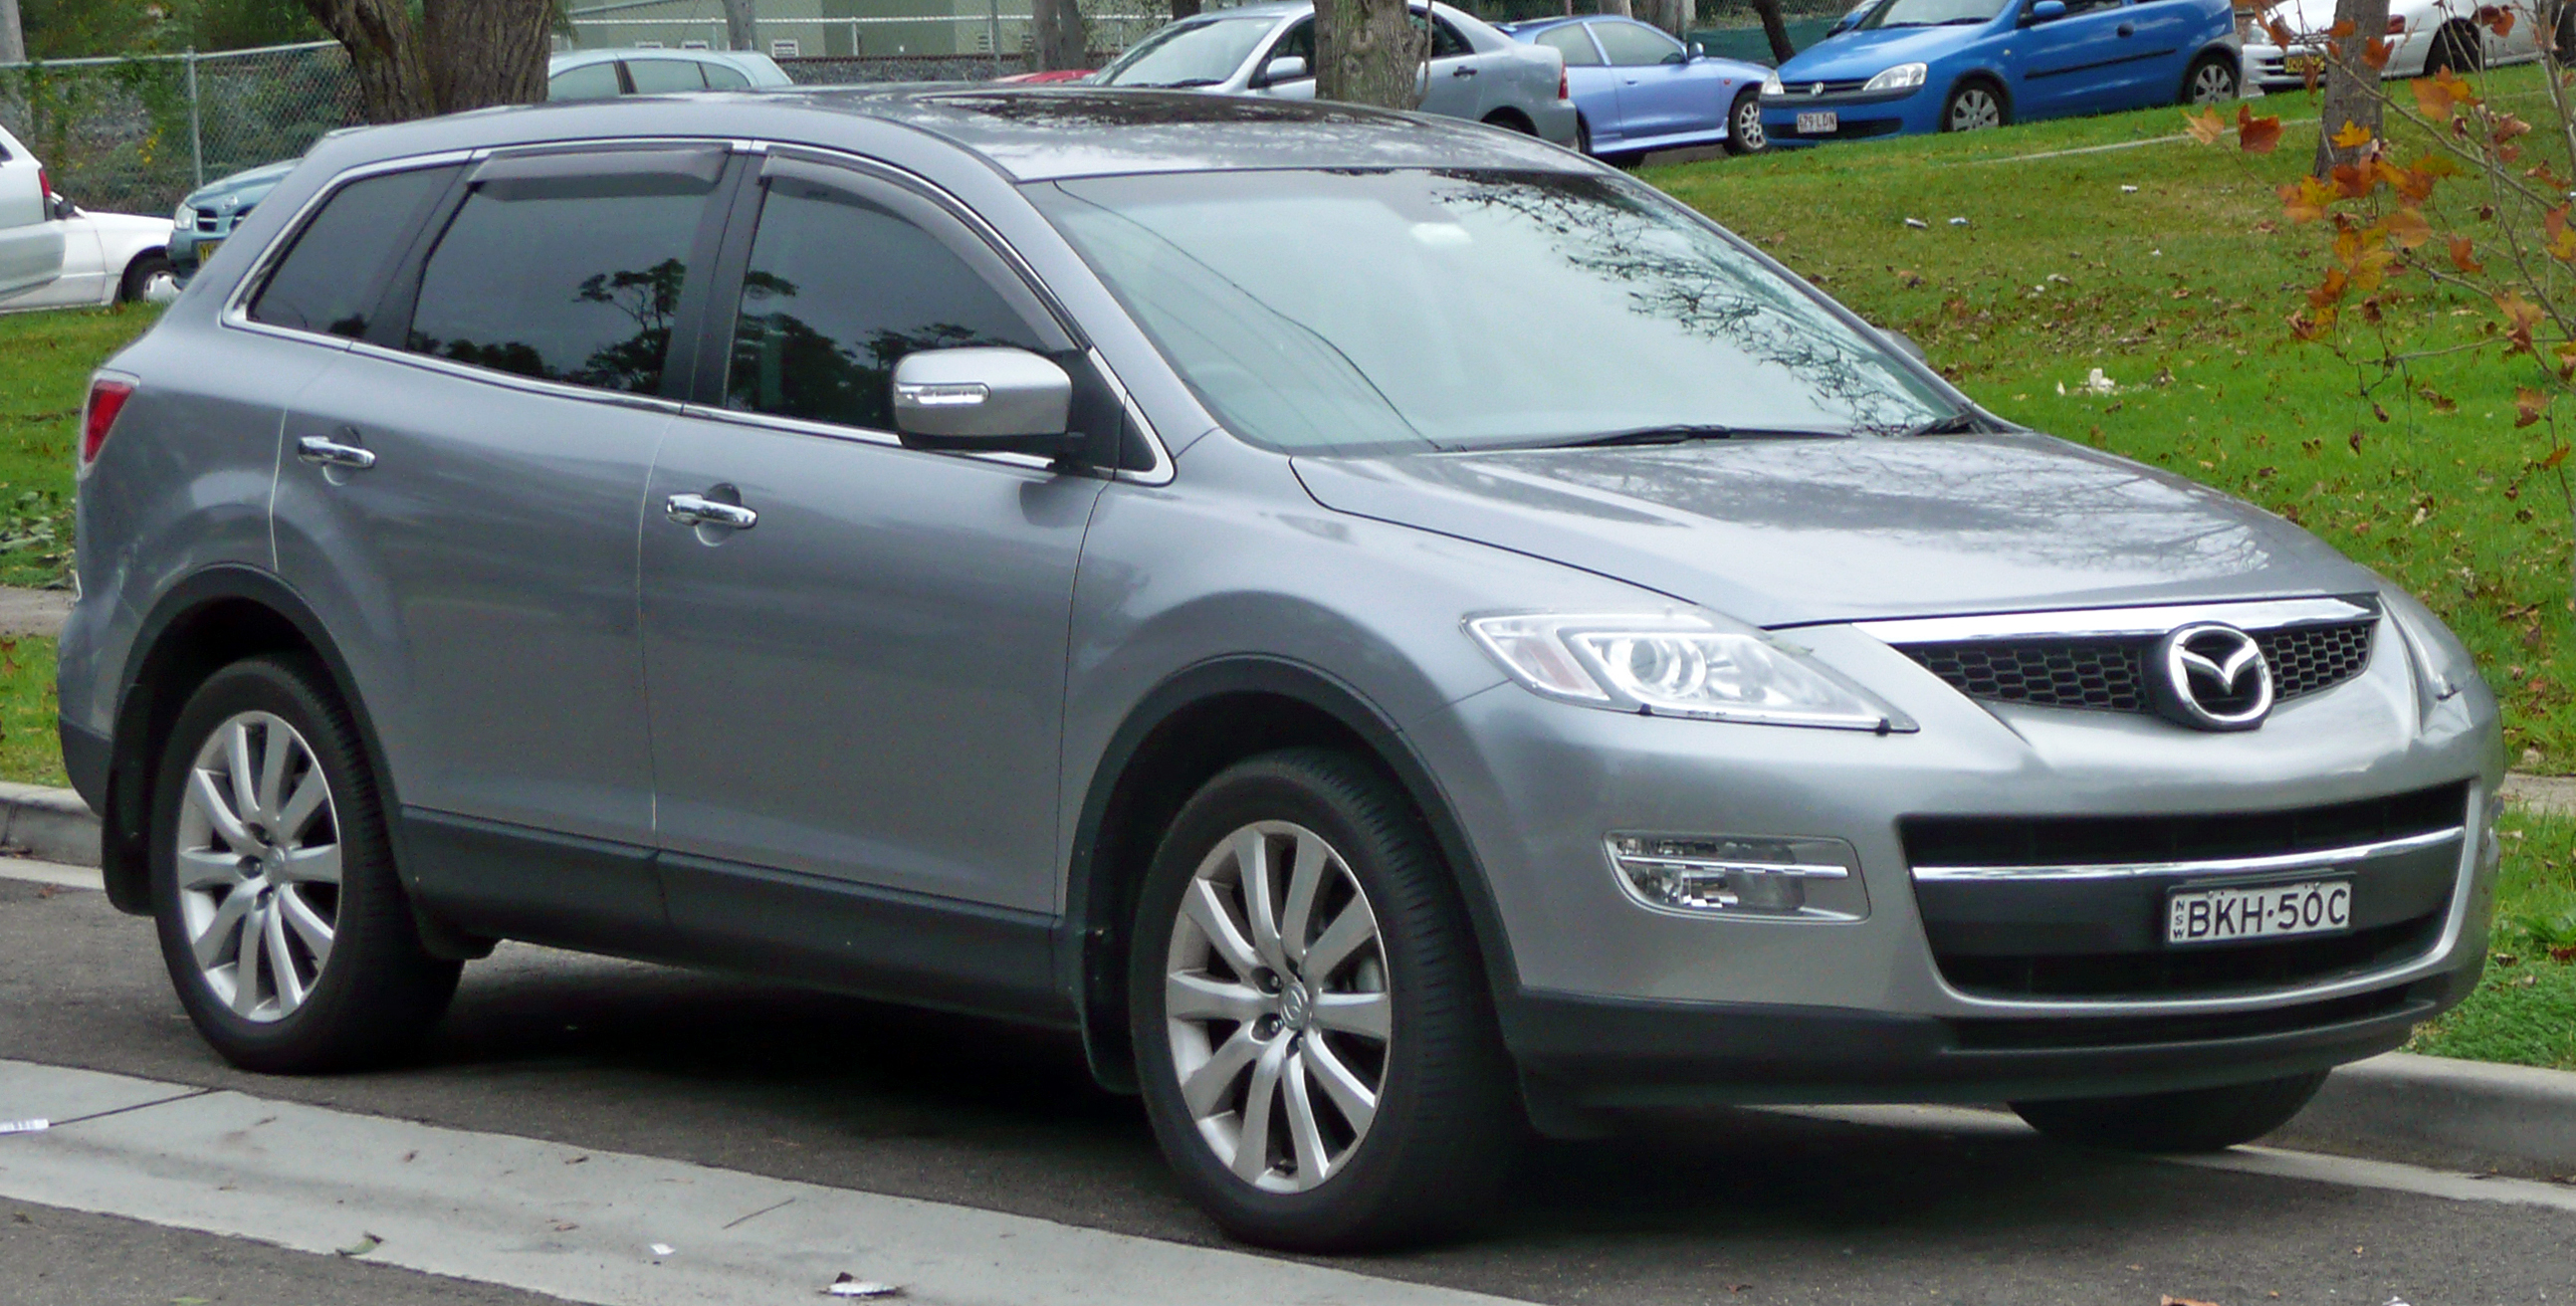 https://upload.wikimedia.org/wikipedia/commons/6/61/2009_Mazda_CX-9_%28TB_Series_1%29_Luxury_AWD_wagon_%282010-06-22%29.jpg